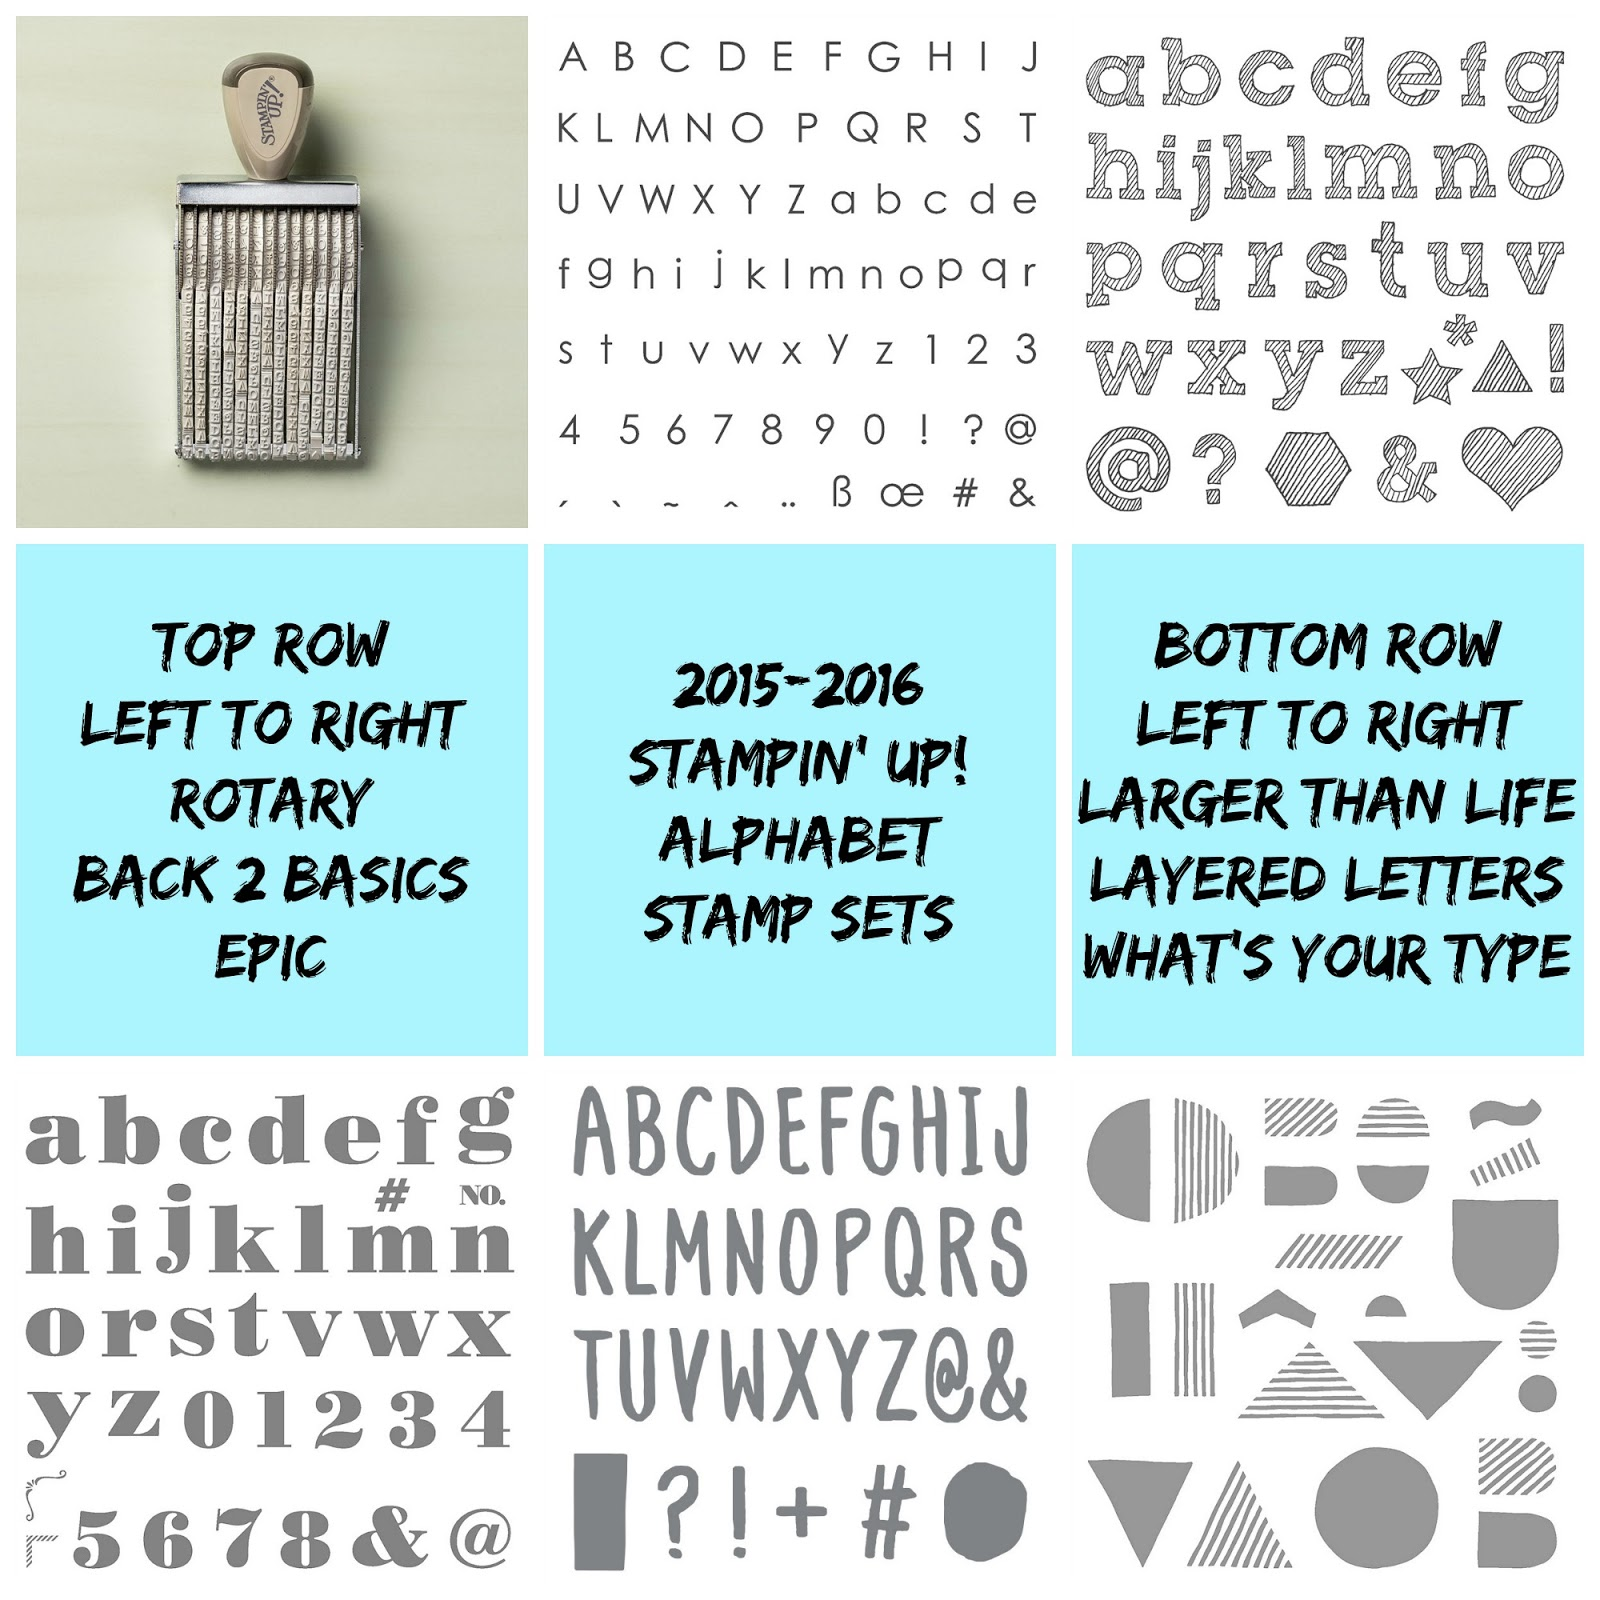 Our Team Had Some Fun Playing With A Few Of The Different Alphabet Stamp Sets And Are Here To Share Their Creations You Today